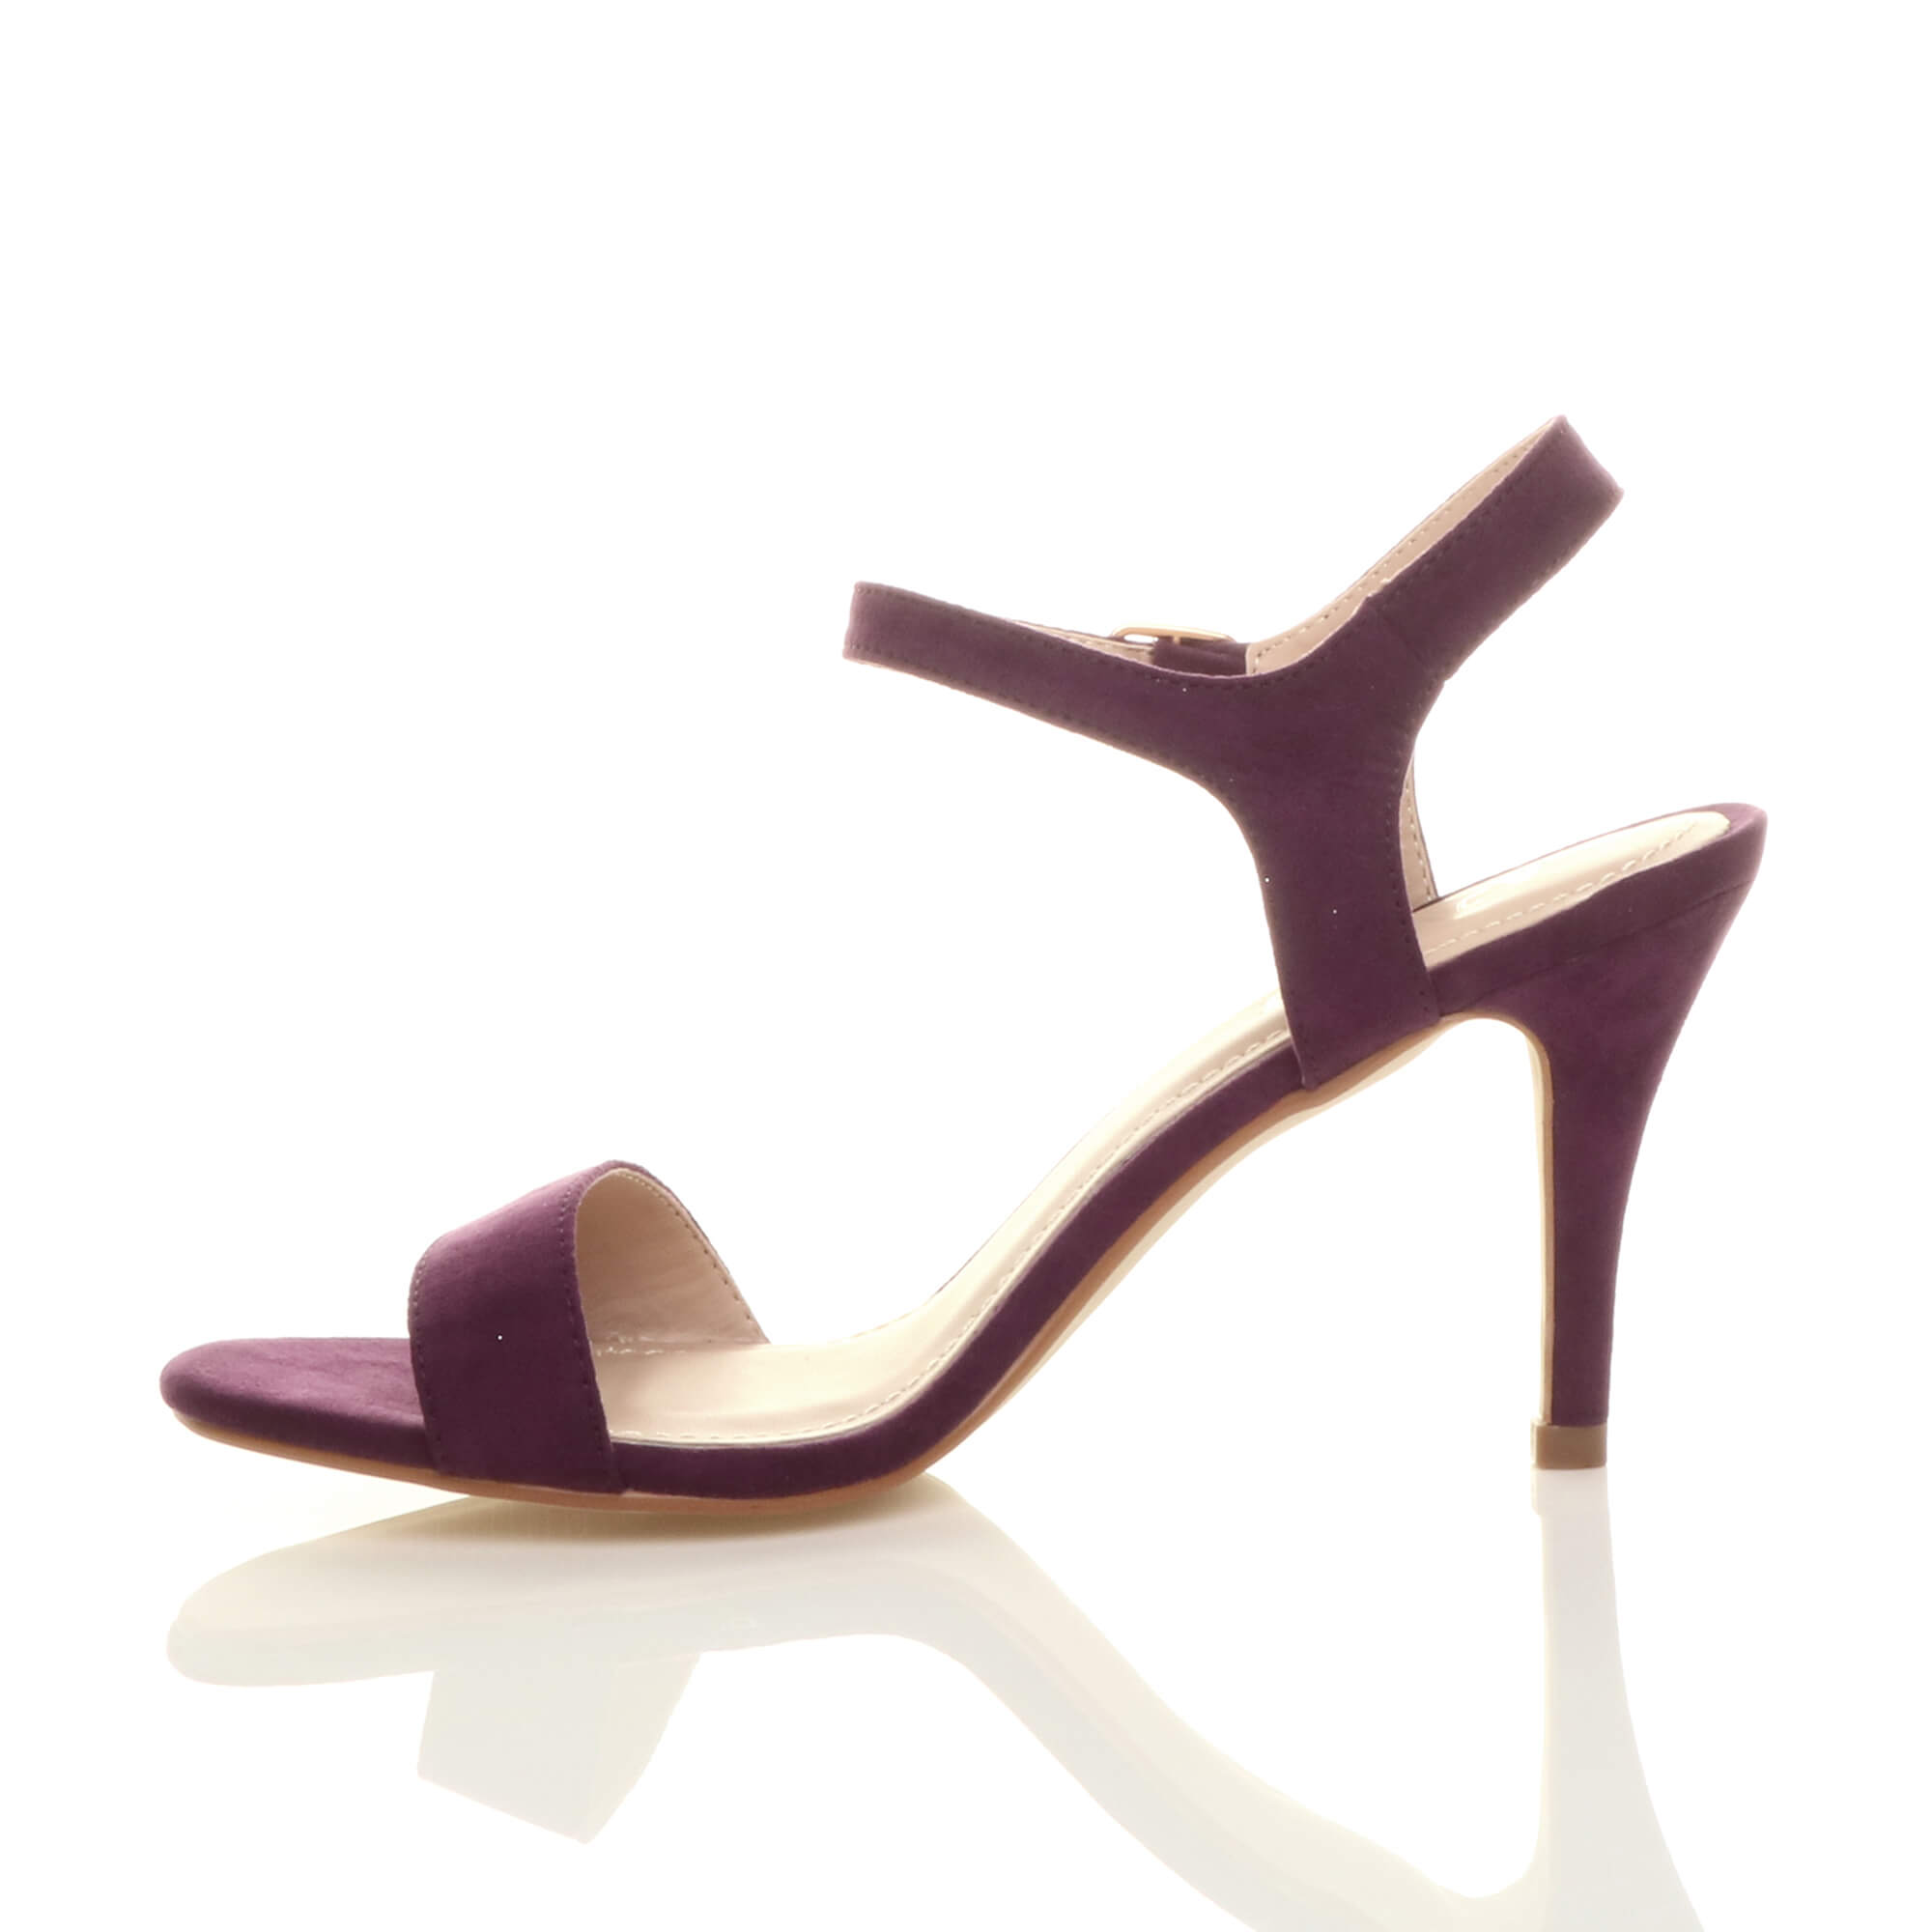 WOMENS-LADIES-HIGH-HEEL-BUCKLE-STRAPPY-BASIC-BARELY-THERE-SANDALS-SHOES-SIZE thumbnail 109